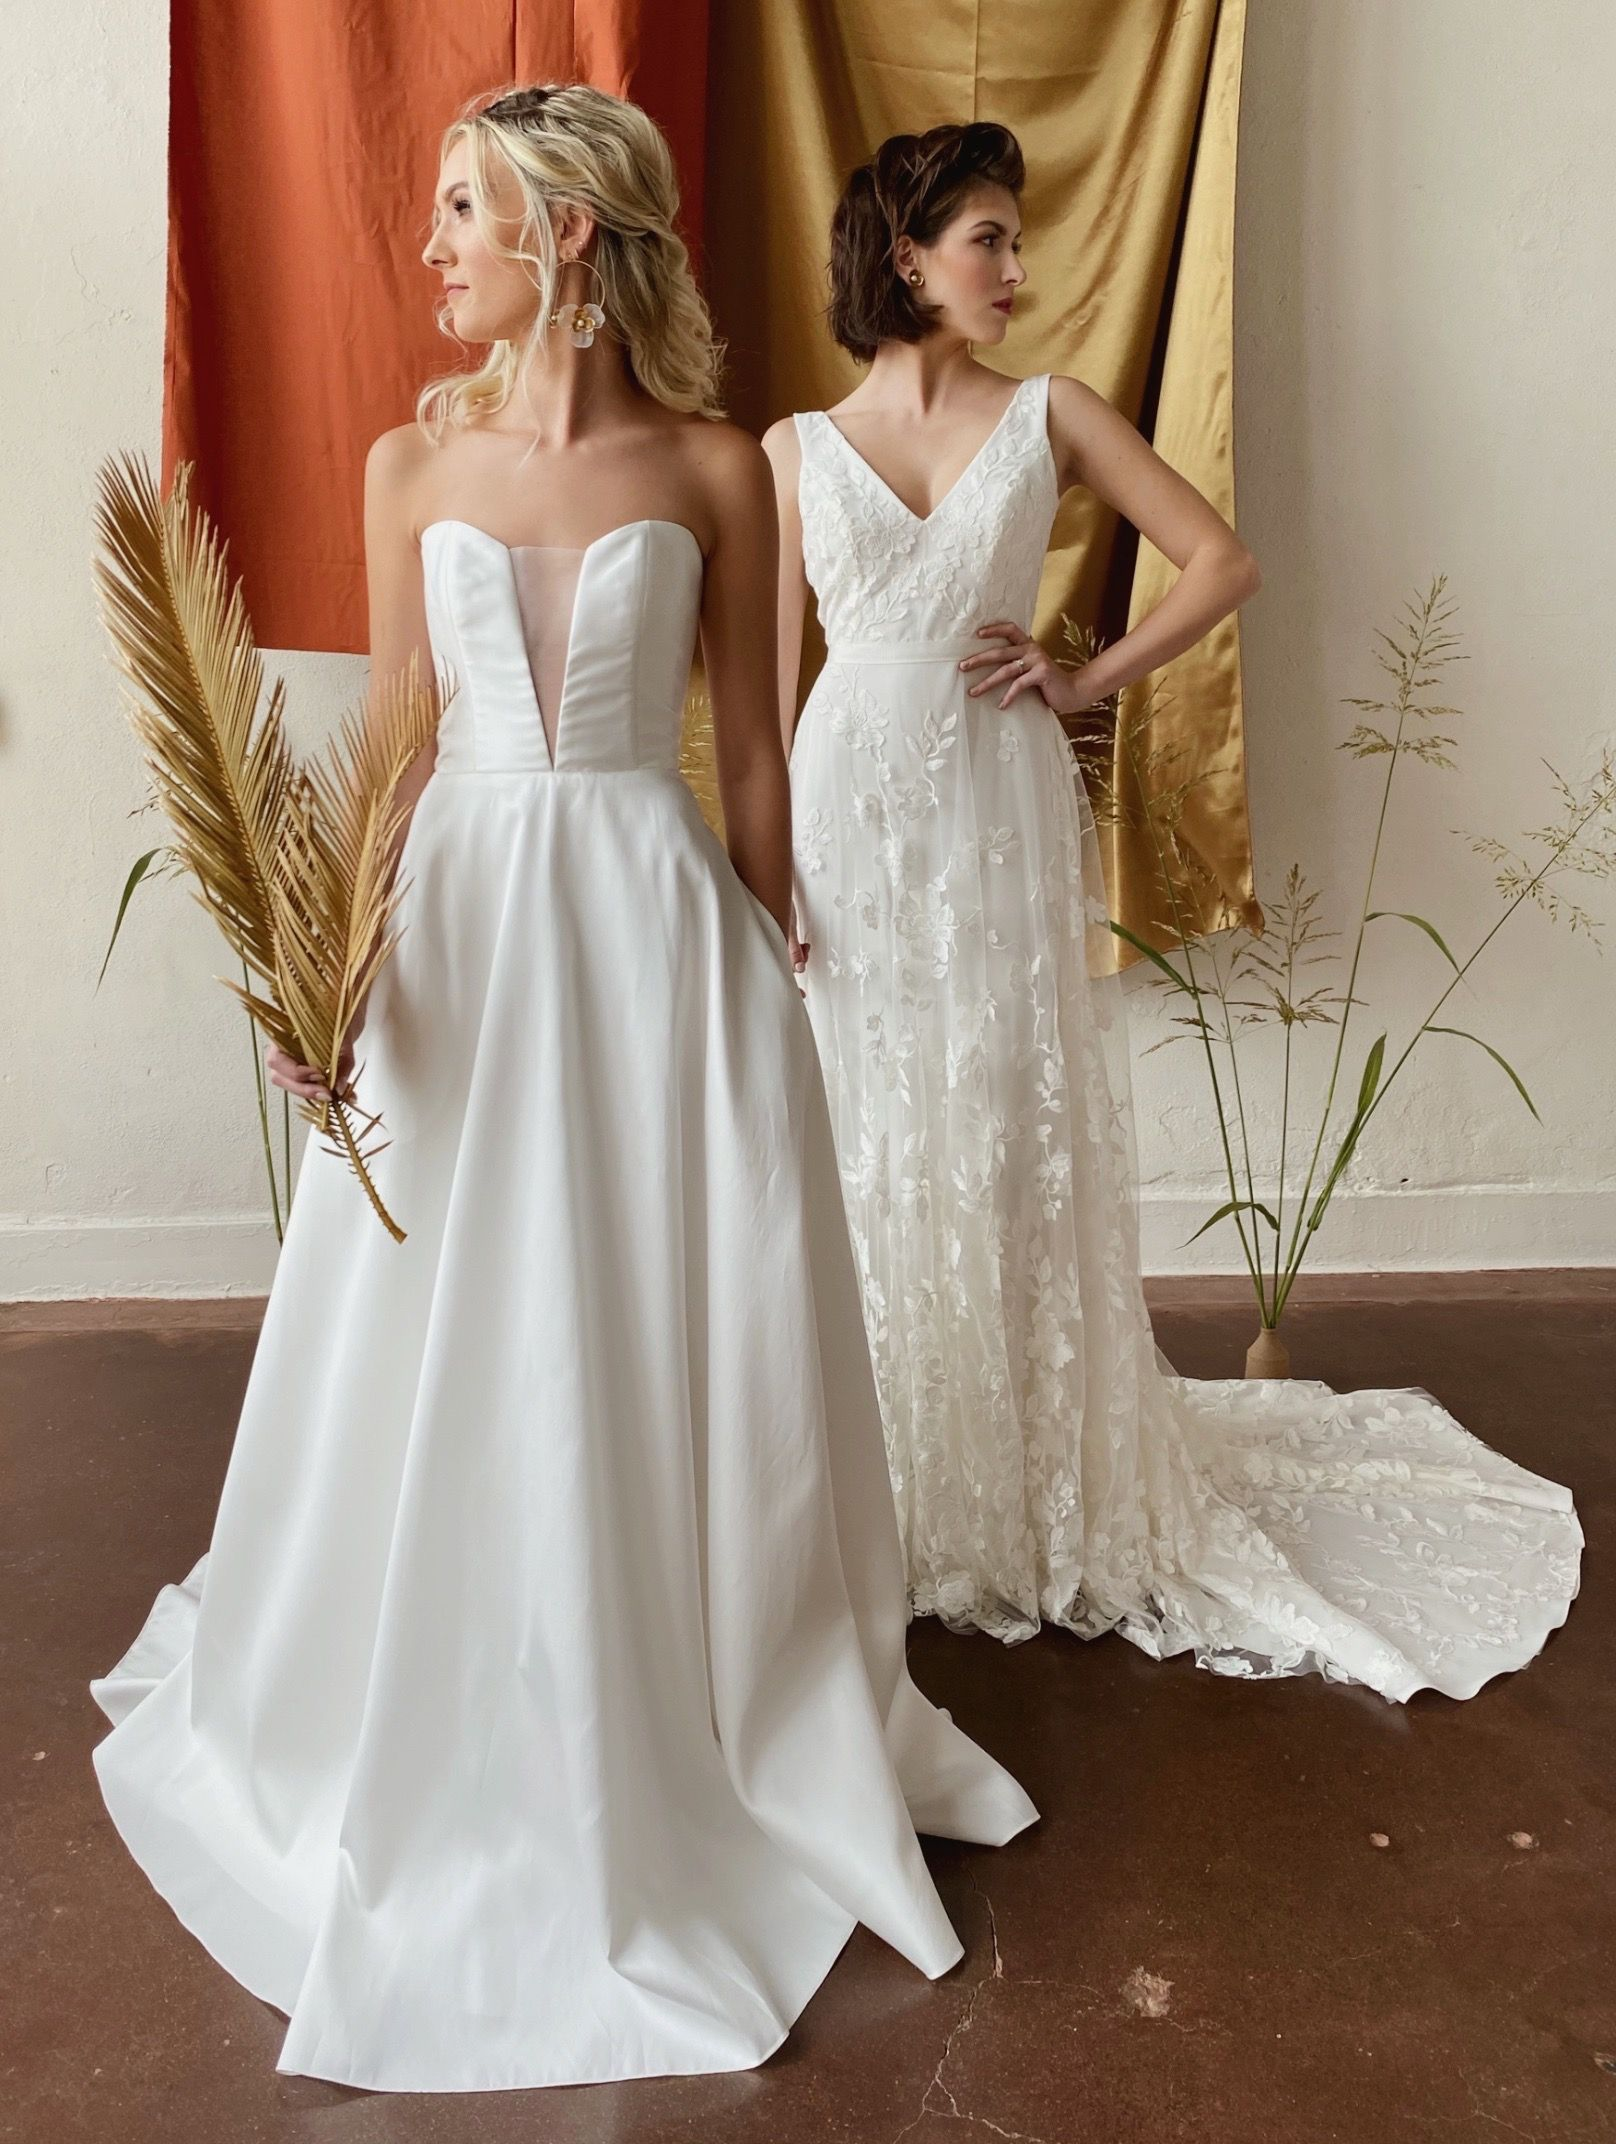 Remi By Anais Anette Willow With Overskirt By Anais Anette Bryde Bridal Shop Tulsa Oklahoma In 2020 Wedding Dresses Strapless Wedding Gown Minimal Wedding Dress